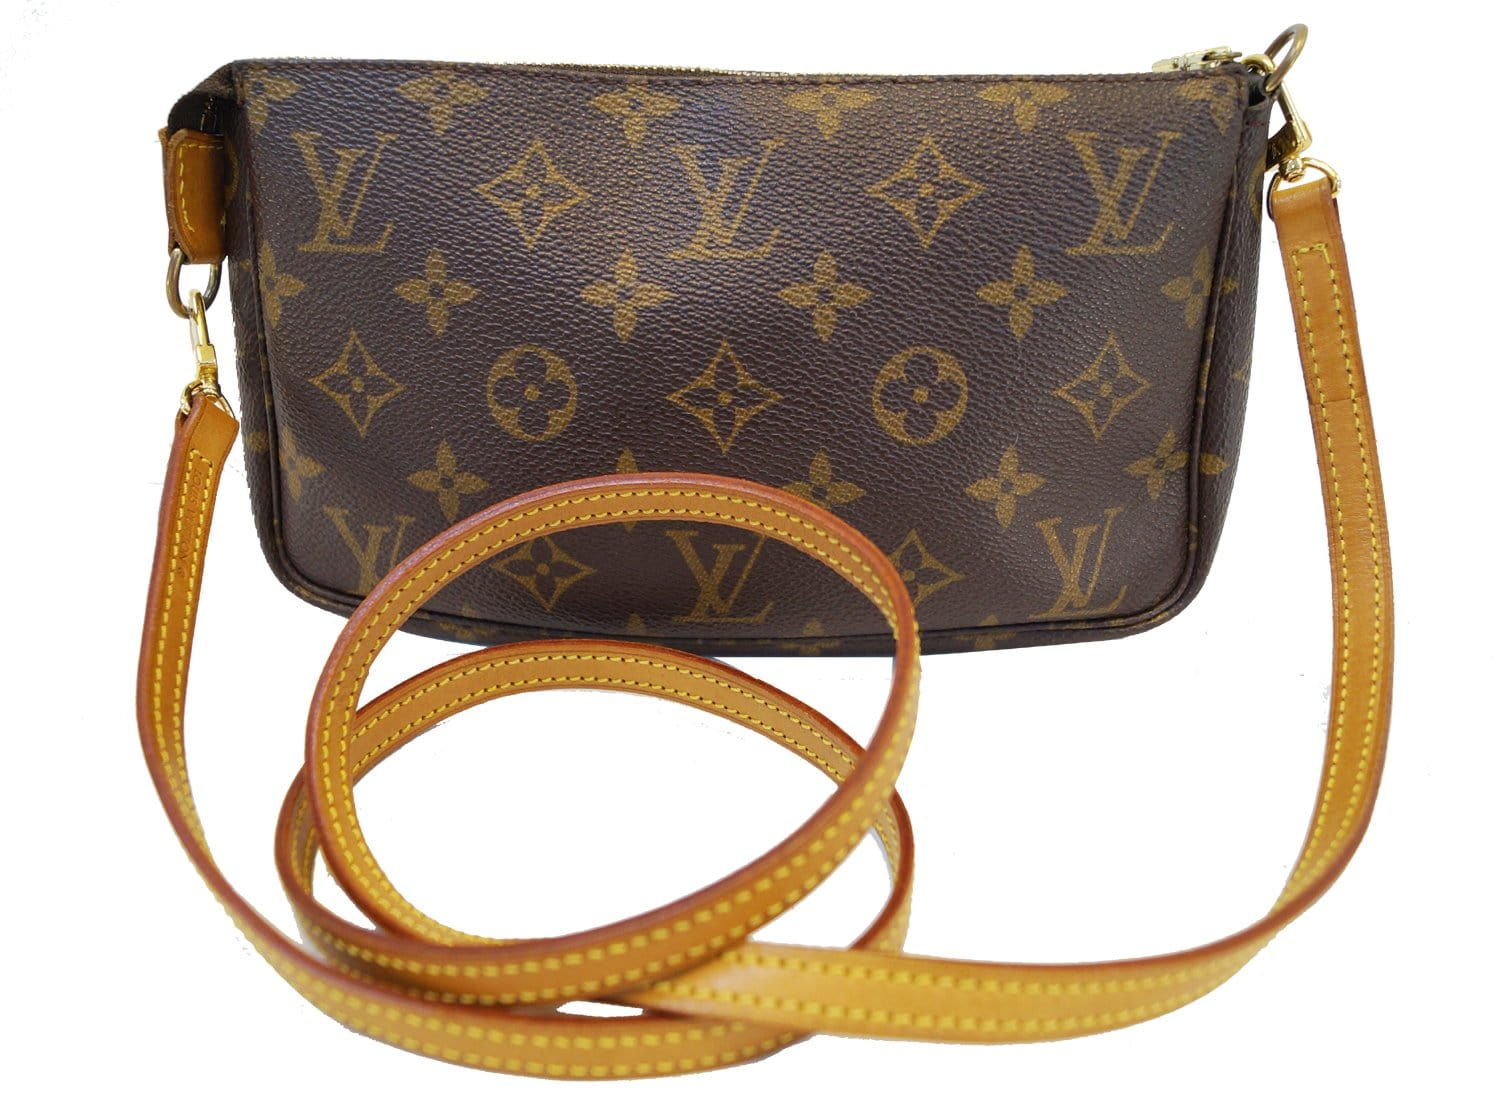 08f33798fc00 Authentic LOUIS VUITTON Monogram Pochette Accessoires Long Shoulder Po